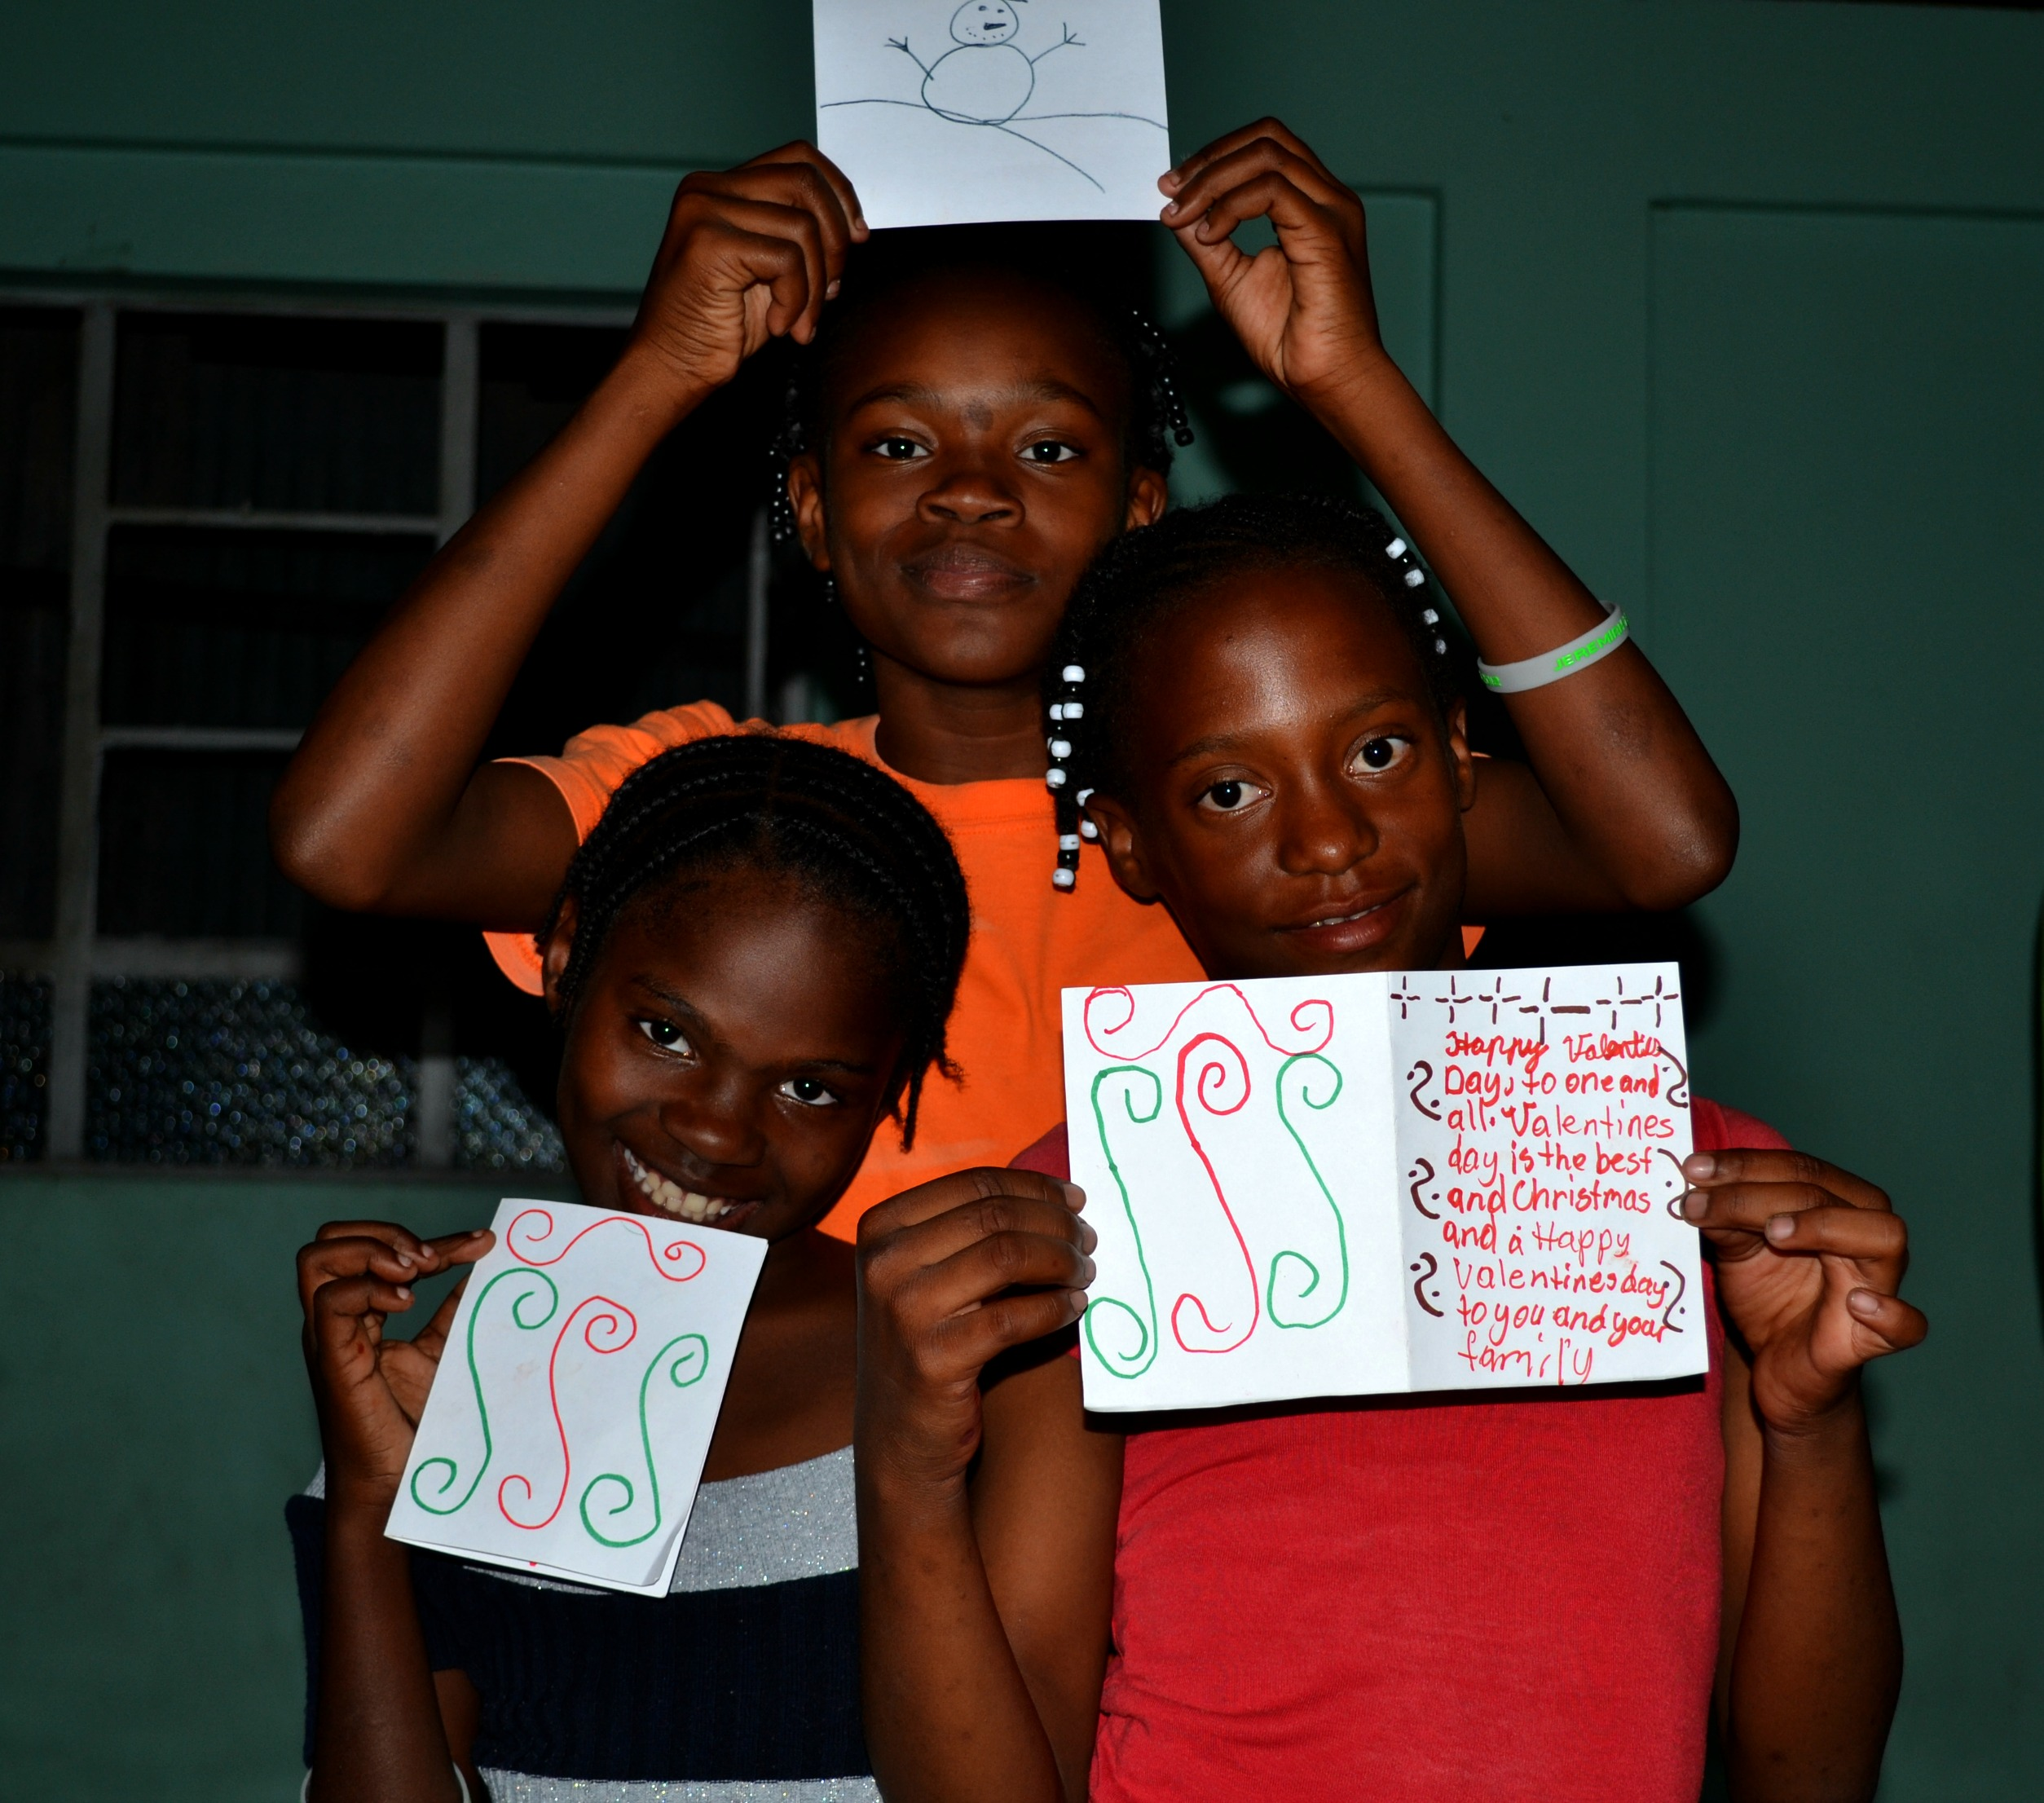 St. Kitts Good News Club